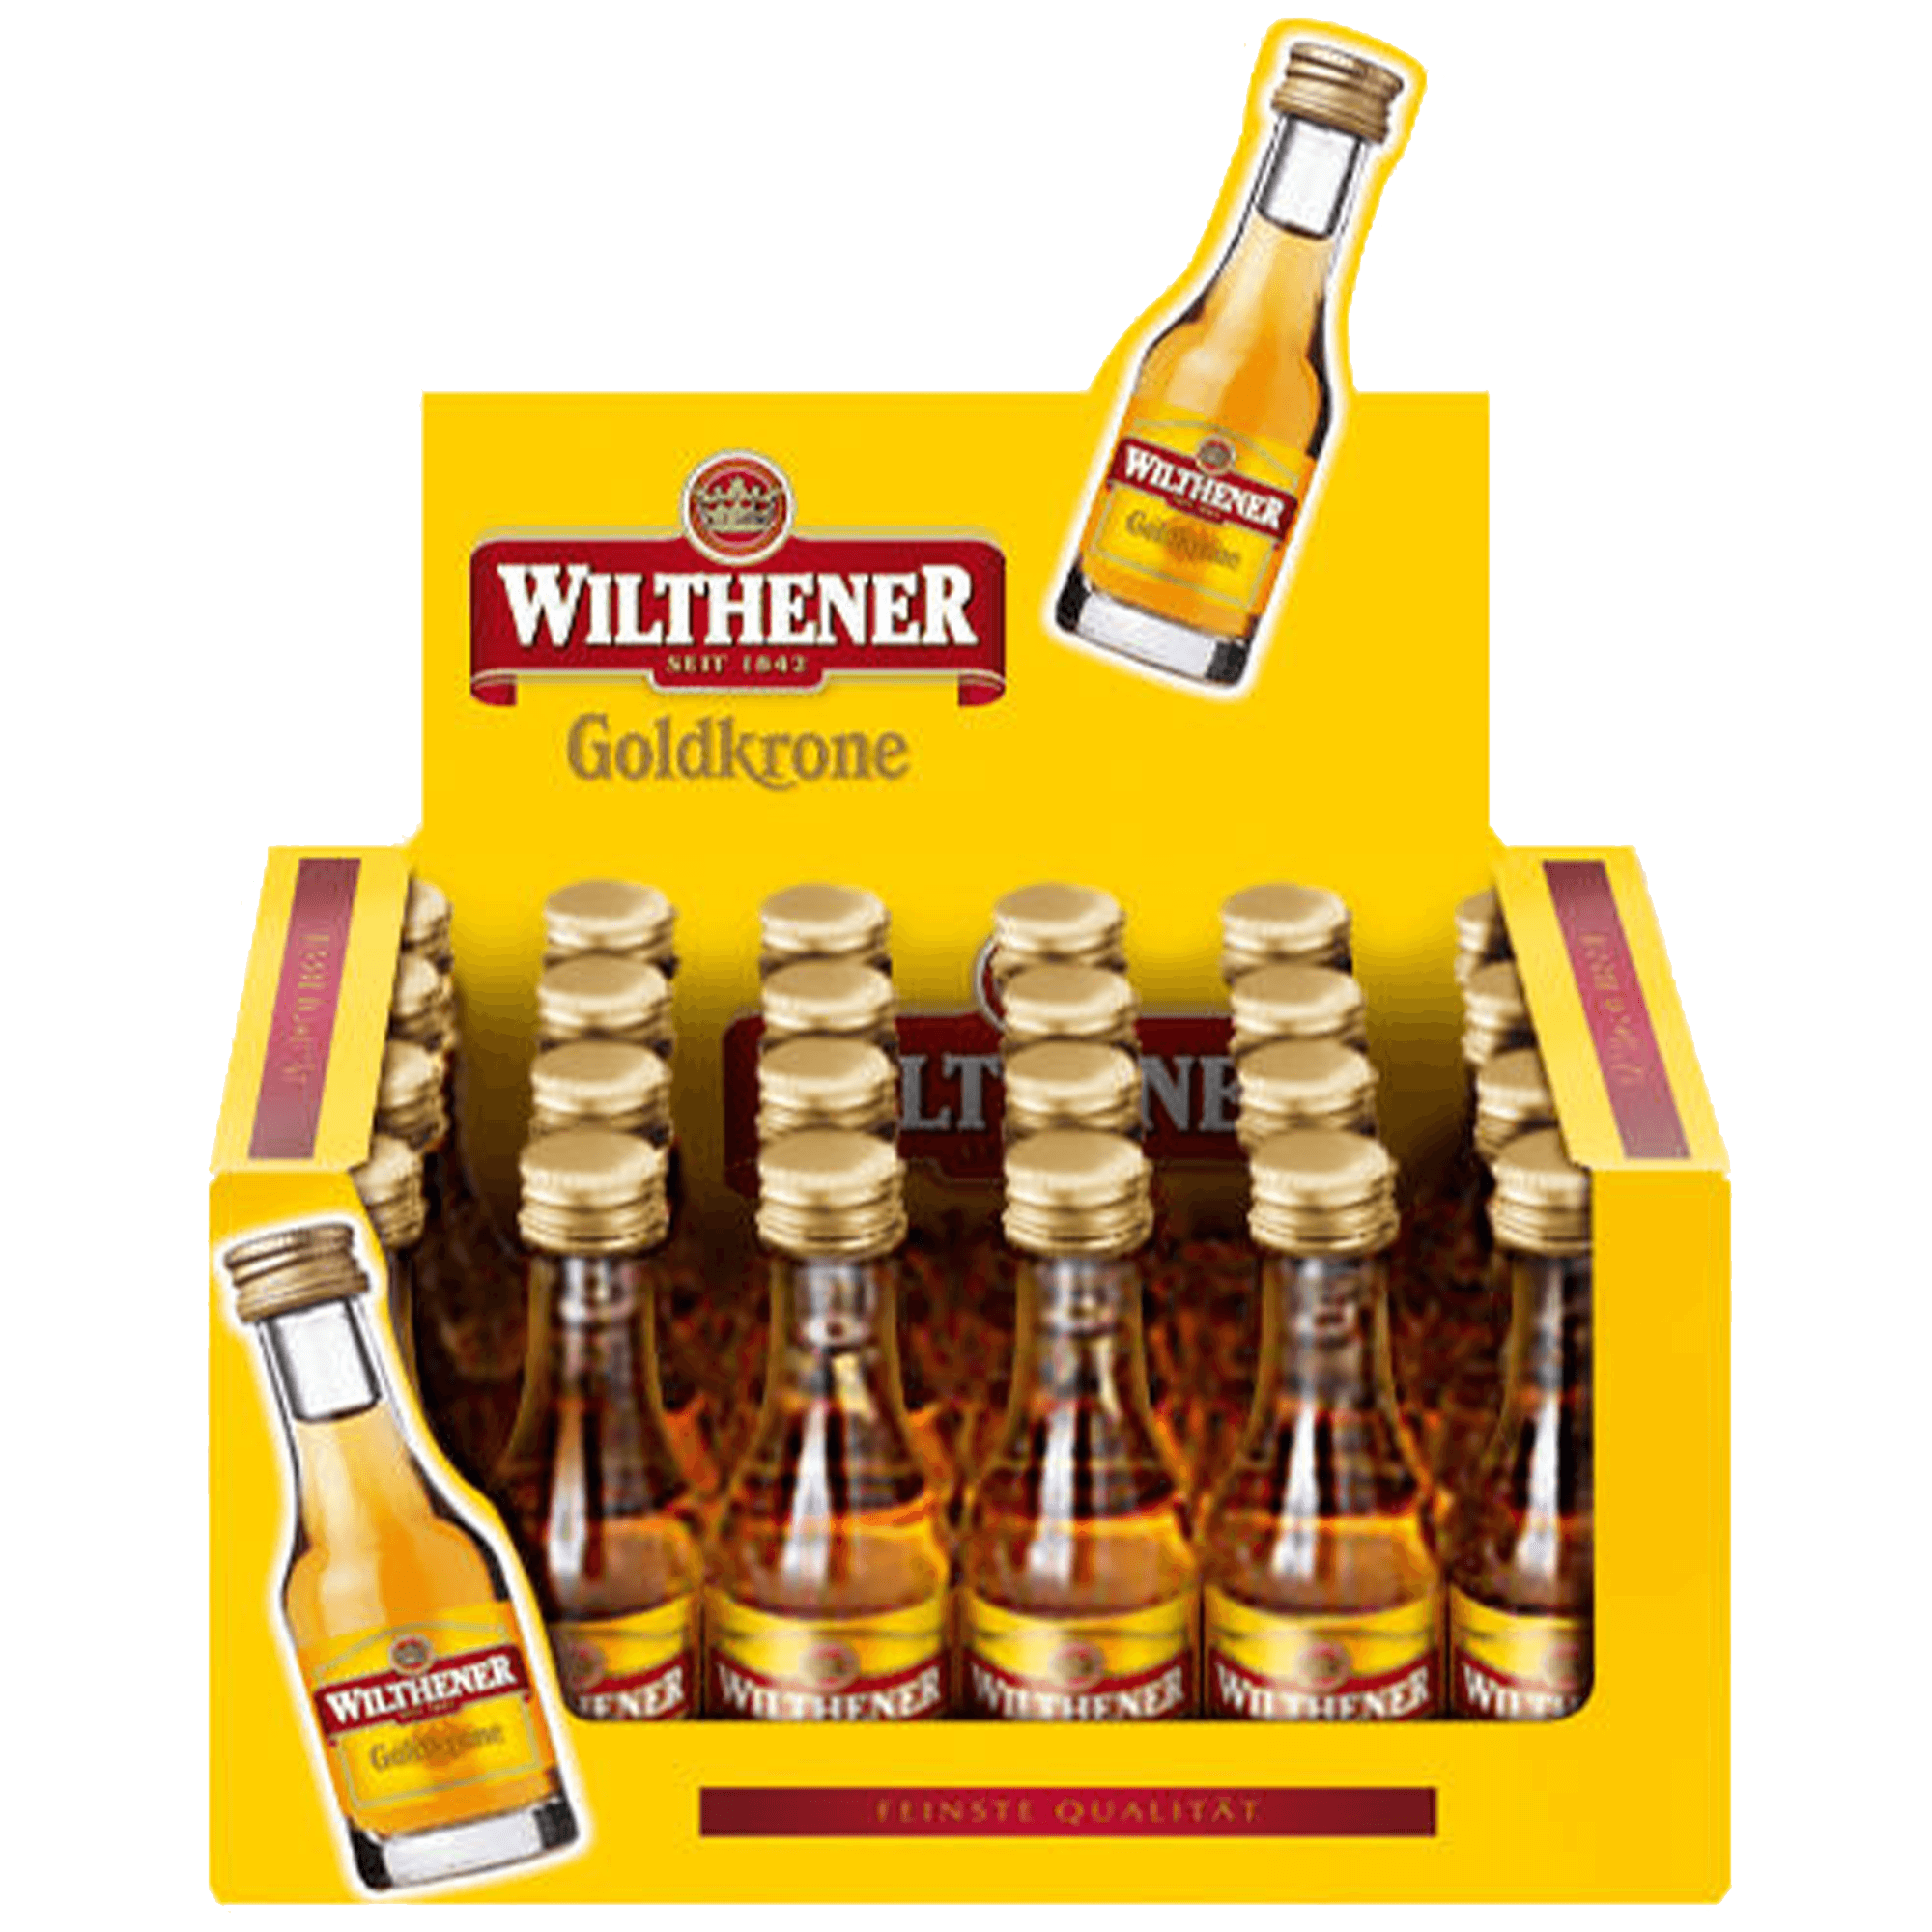 Wilthener Goldkrone 24x0,02l